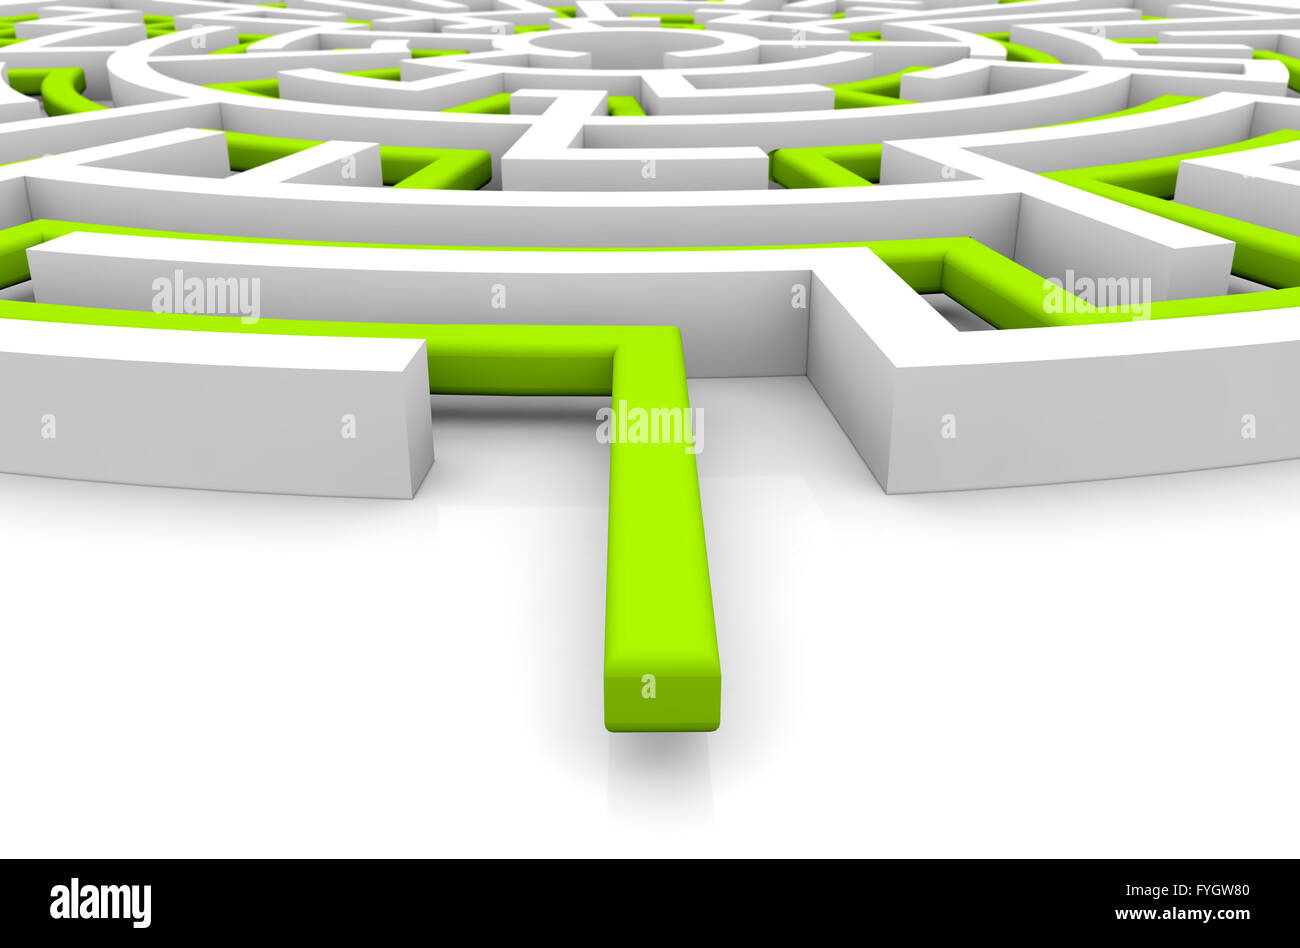 adversity concept: render of a maze - Stock Image